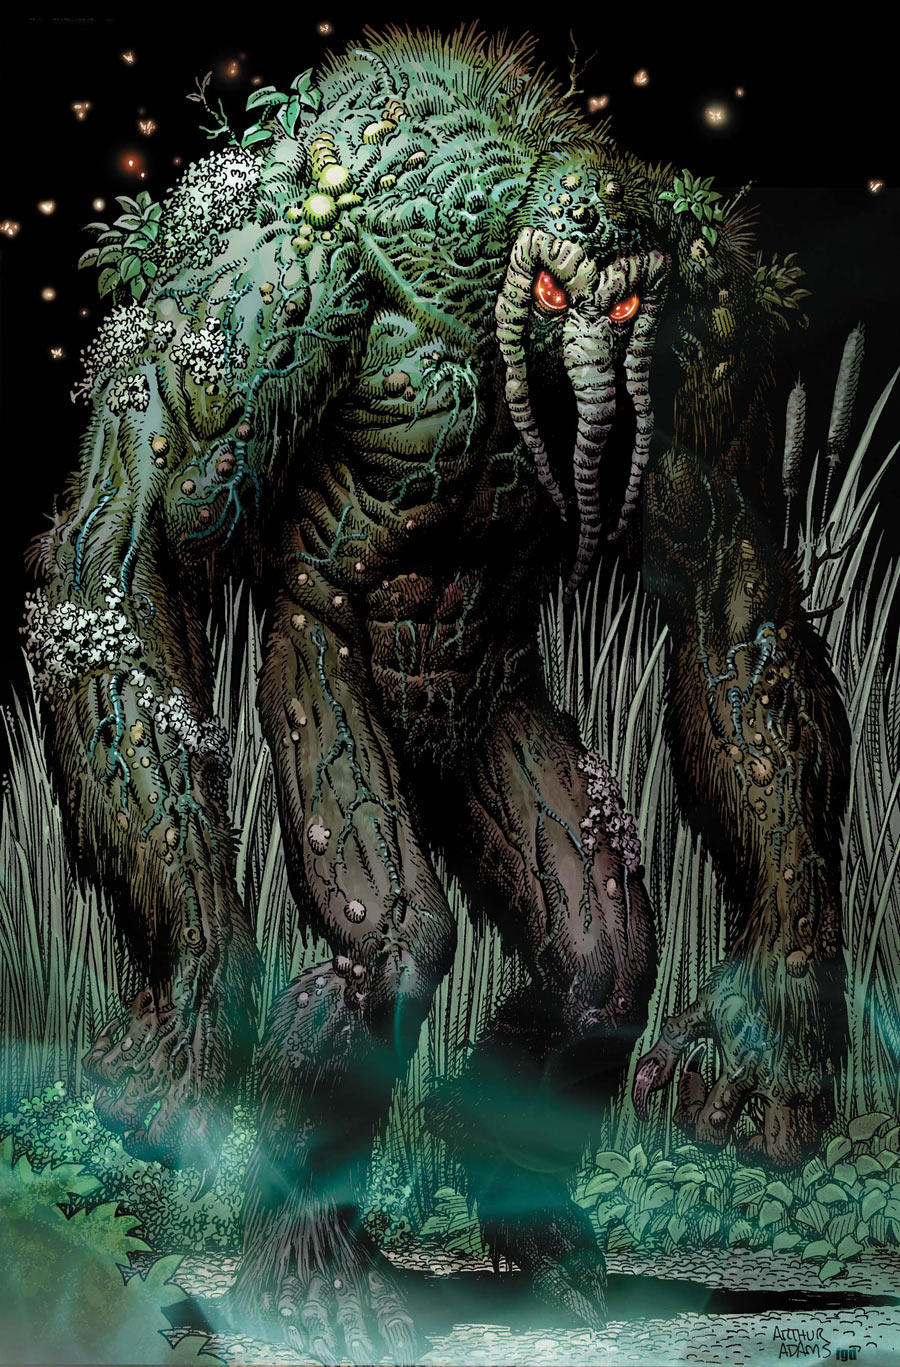 Episode 8 - Man-Thing! or In Retrospect I Don't Think Any Pages Were Missing